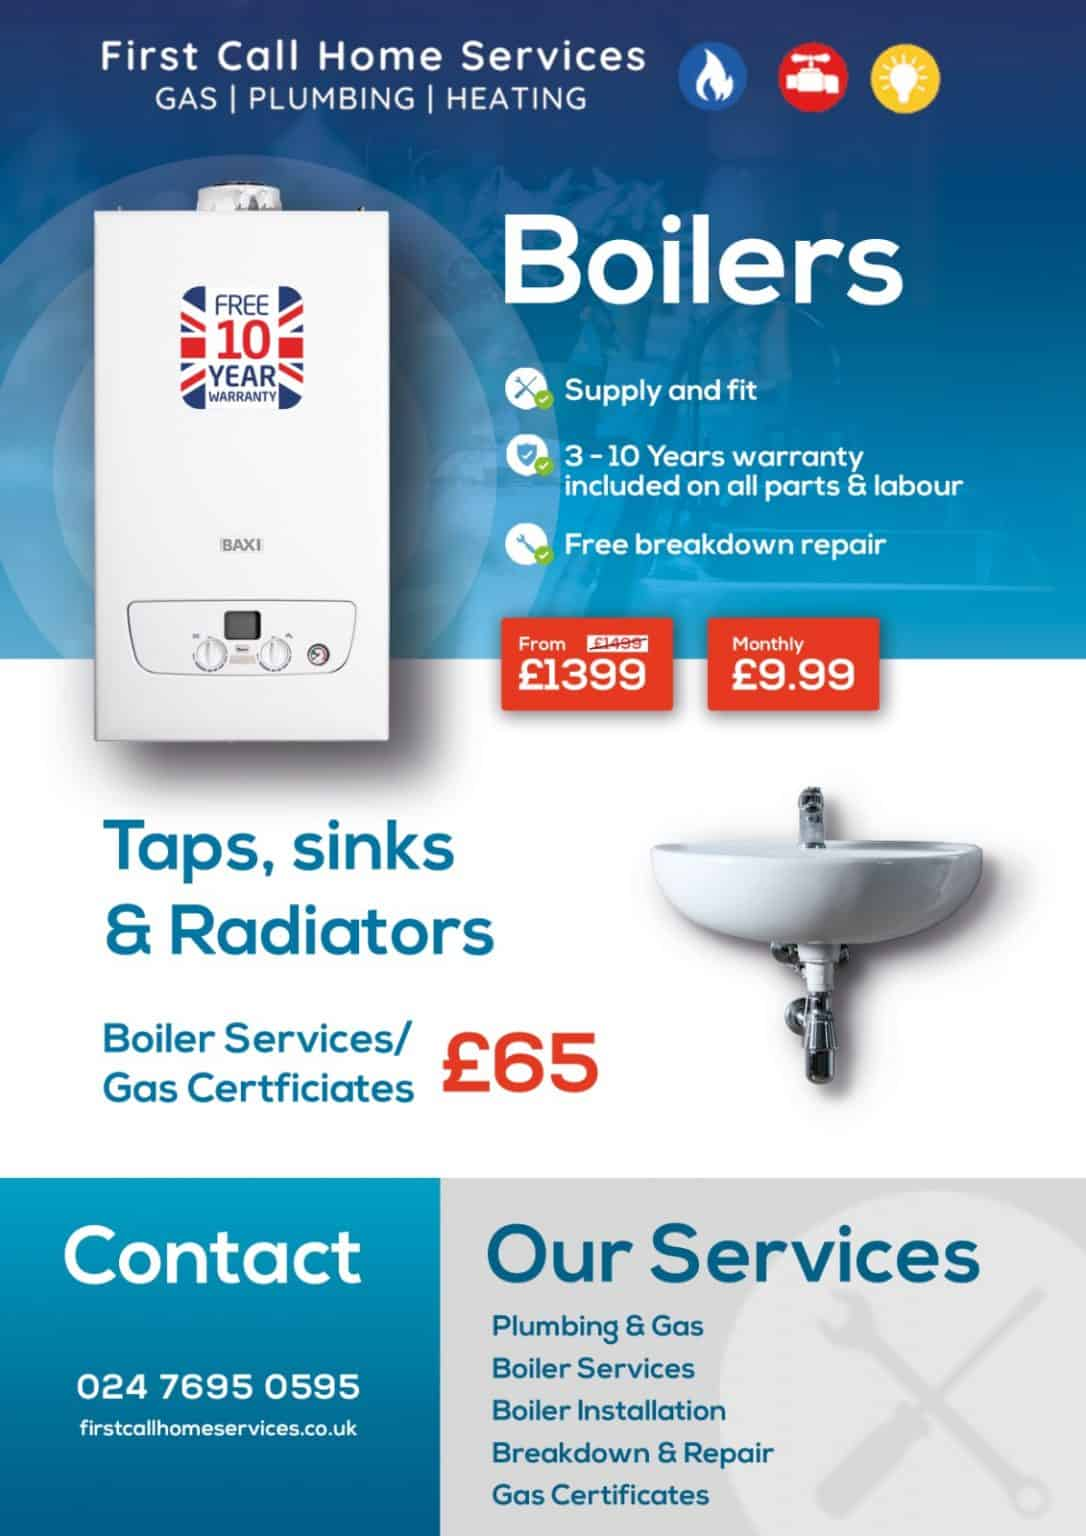 Boilers from £1399 or £9.99 a month on finance